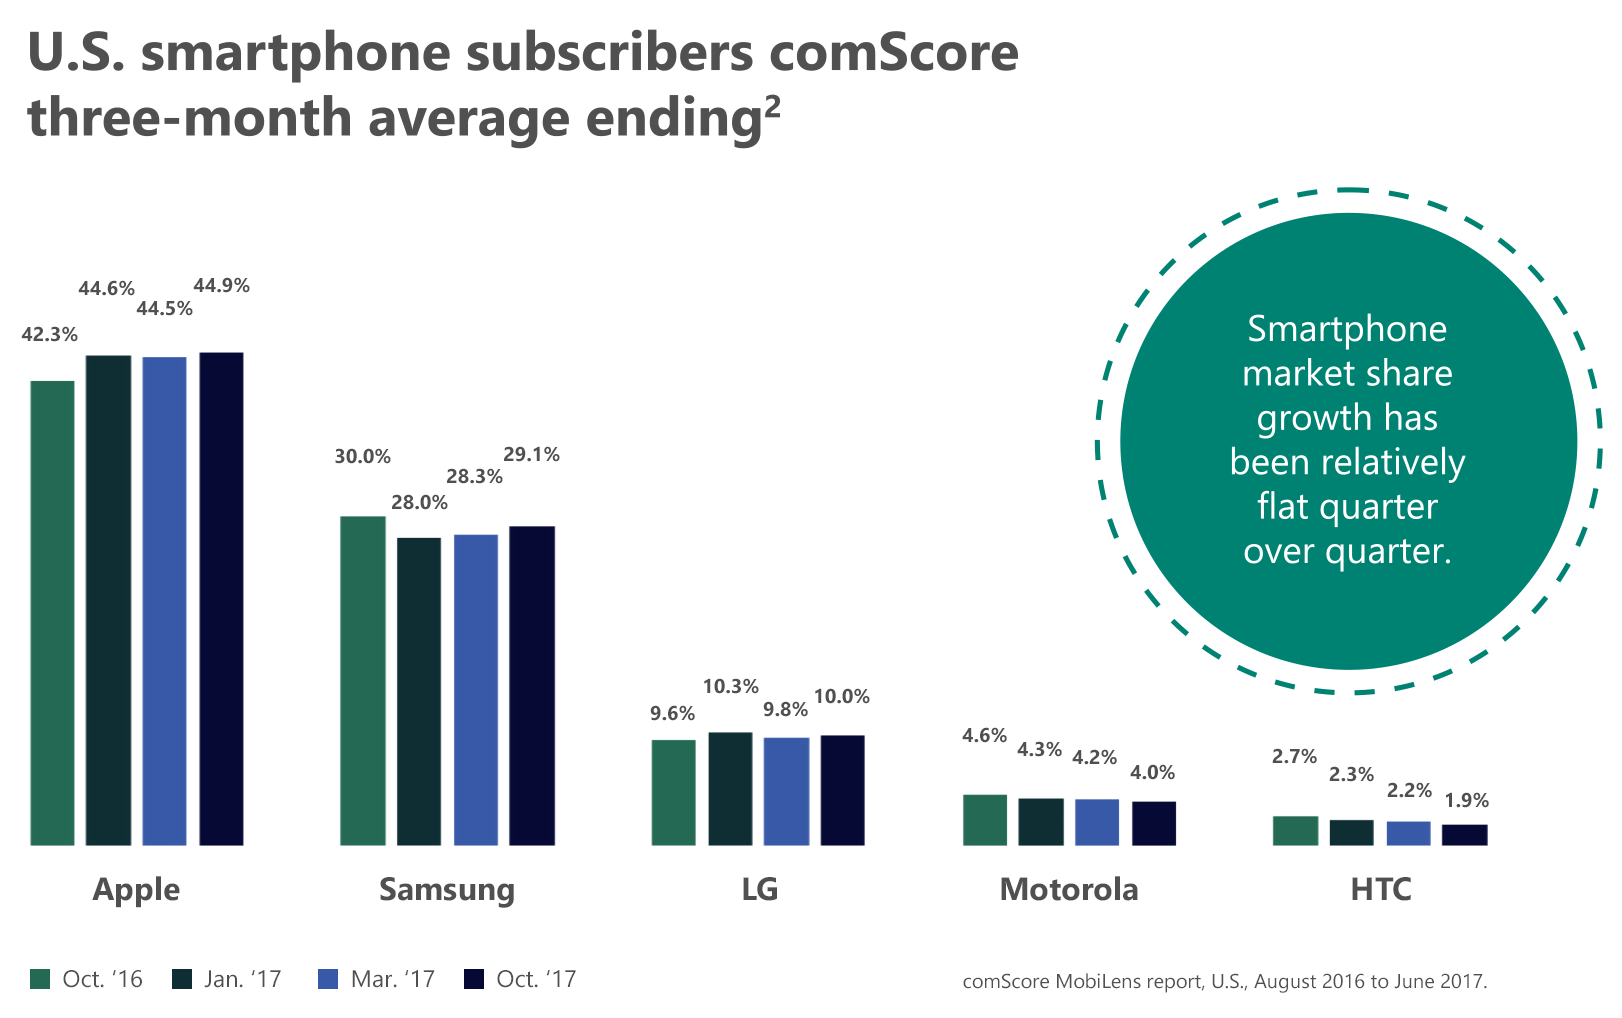 Graph #1: U.S. smartphone subscribers comScore three-month average ending